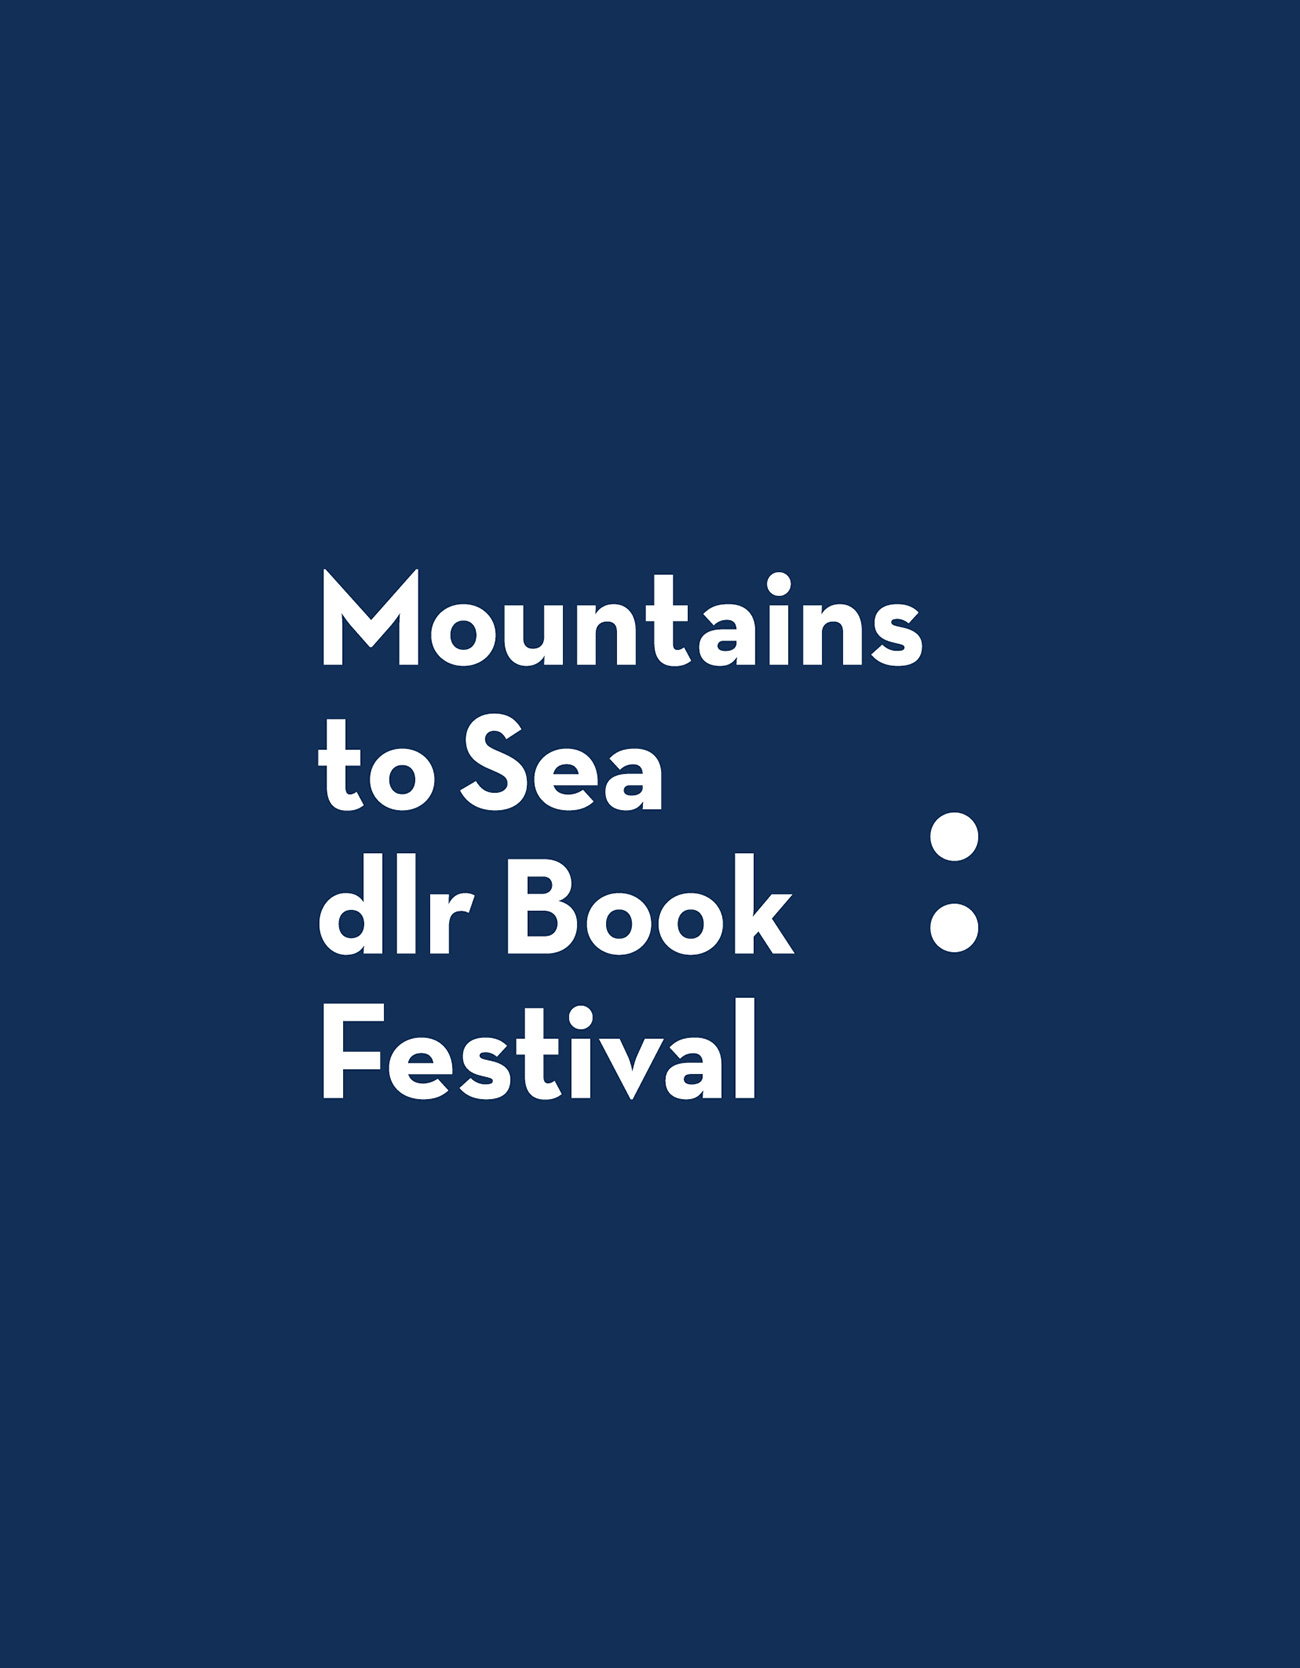 Mountains to Sea Book Festival Brand Development